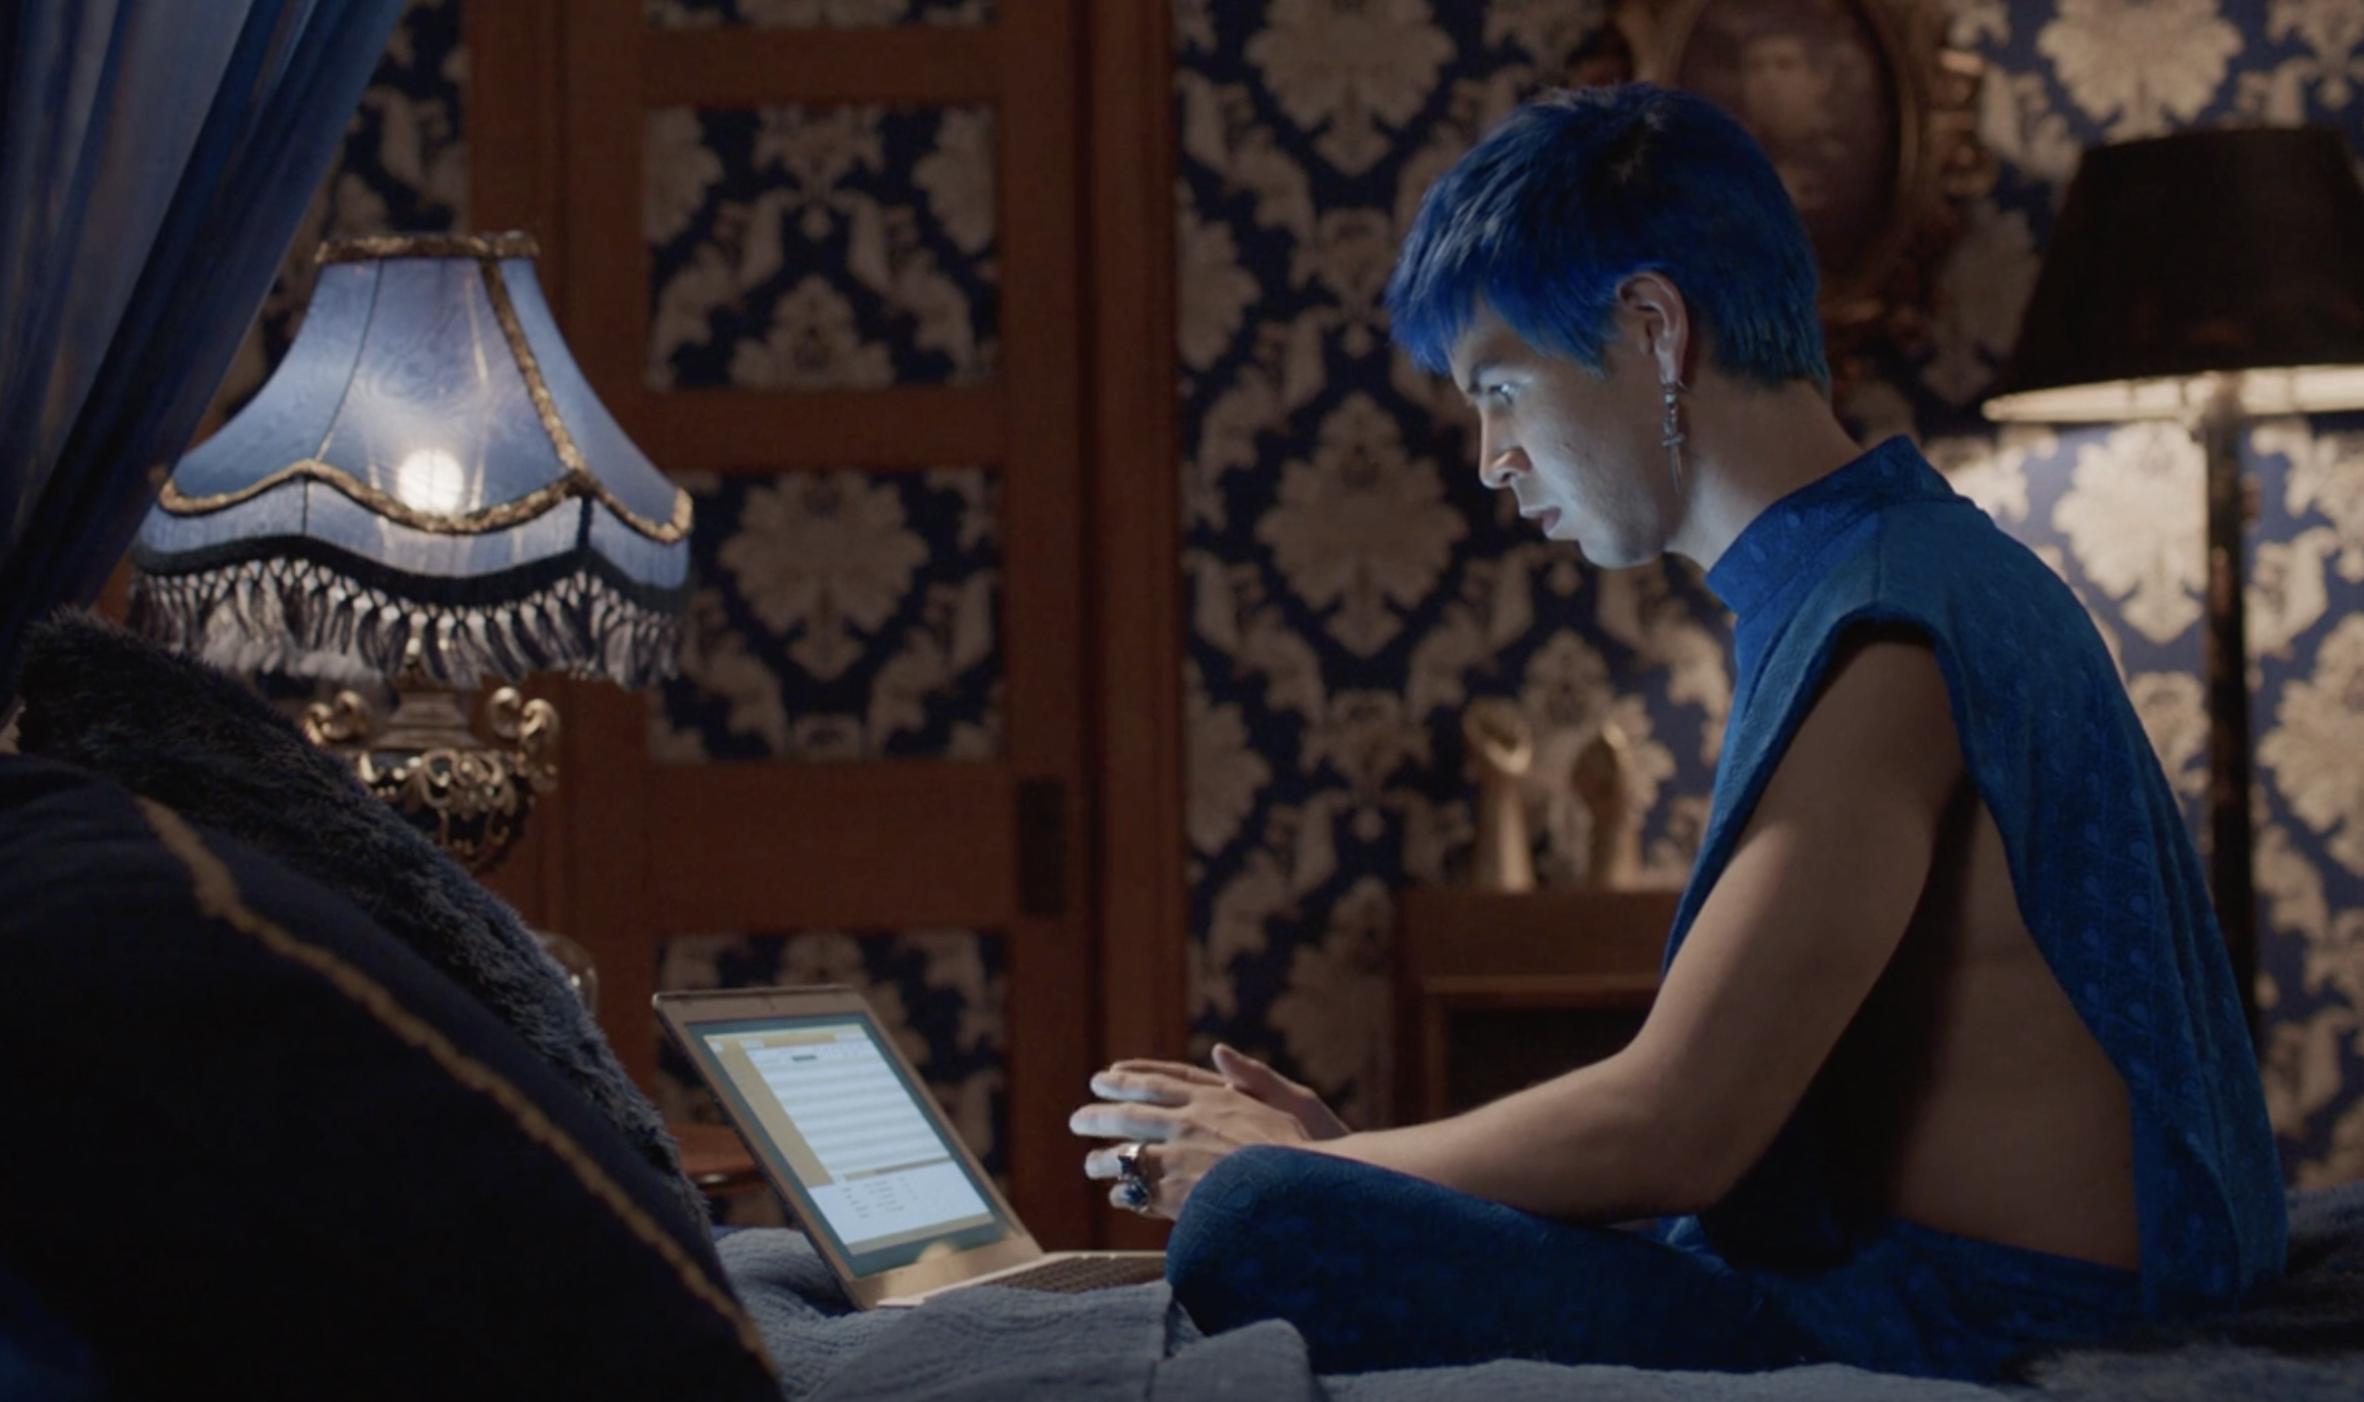 Andres on his computer while wearing a blue sleeveless shirt that's completely open on the sides